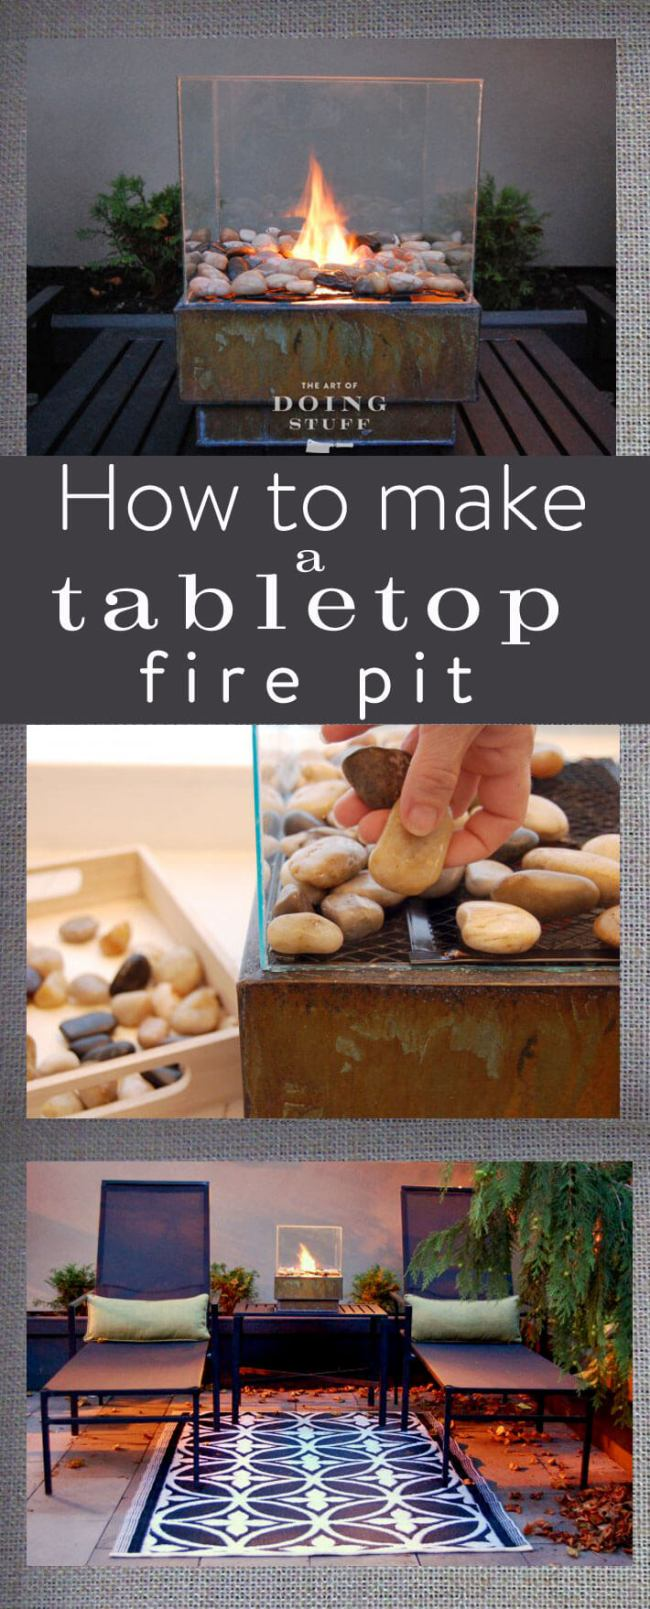 outdoor  DIY fire pit ideas designs how to build the handy mano manomano tabletop pebbles